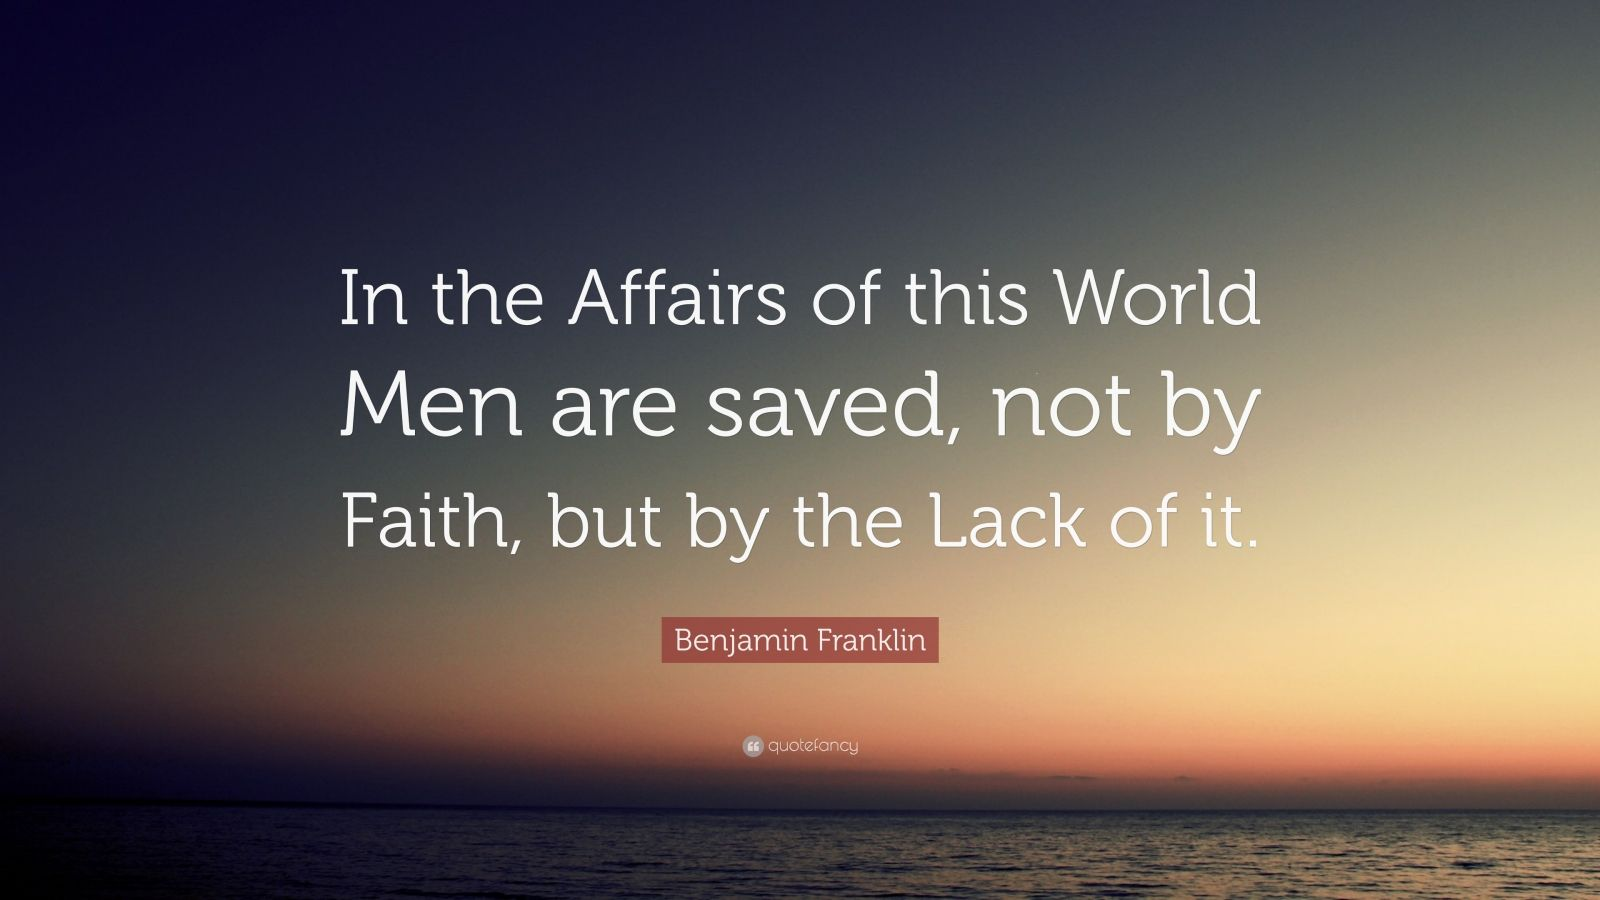 """Benjamin Franklin Quote: """"In the Affairs of this World Men are saved, not by Faith, but by the Lack of it."""""""